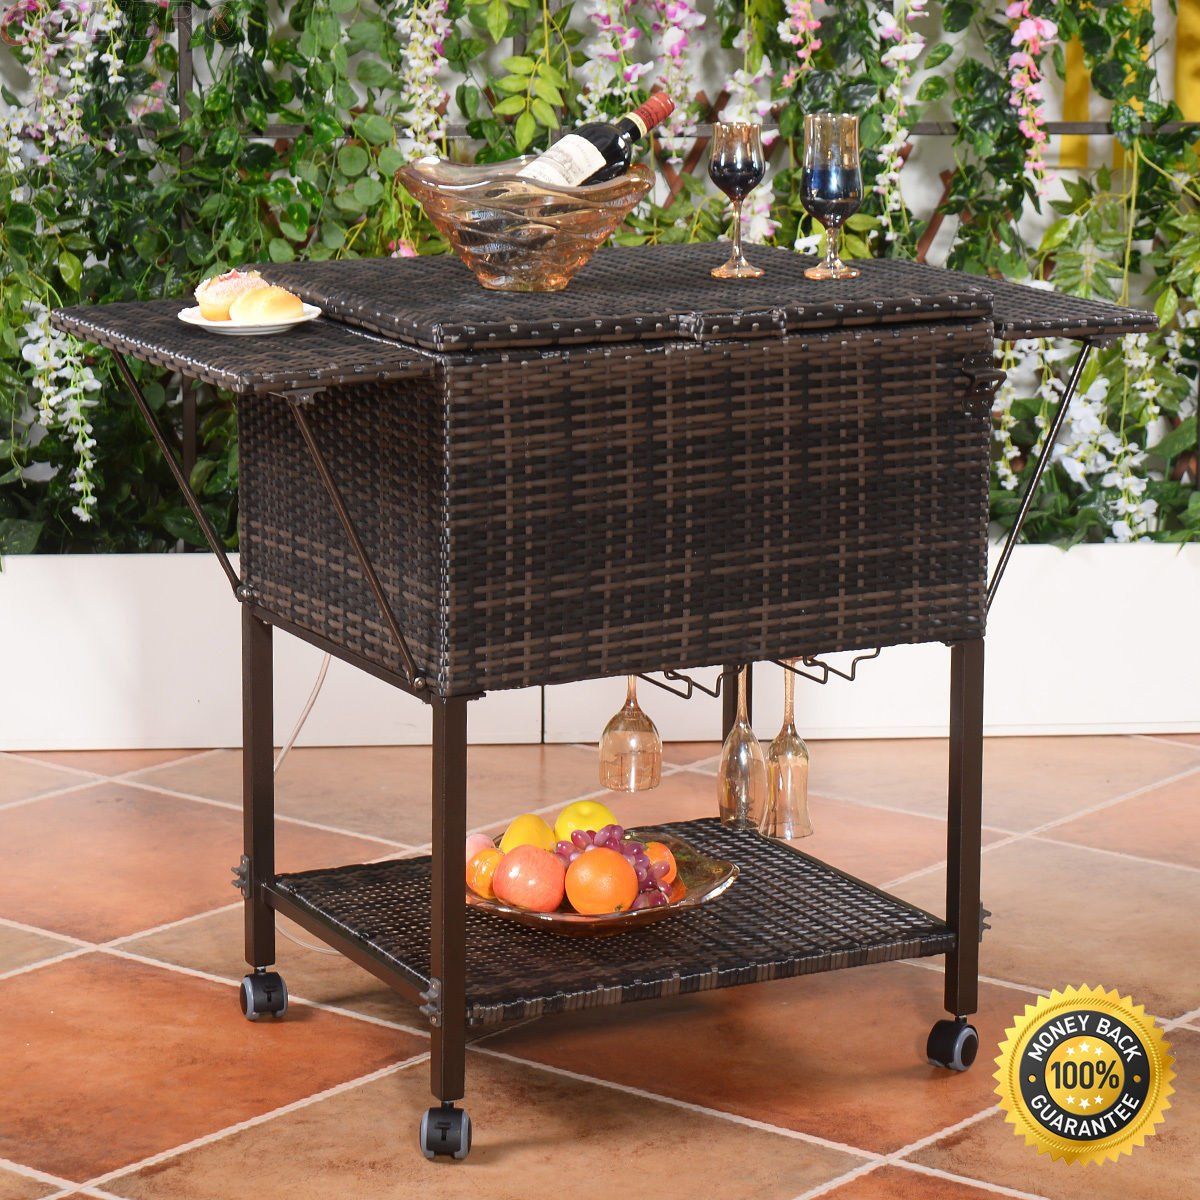 COLIBROX--Portable Rattan Cooler Cart Trolley Outdoor Patio Pool Party Ice Drink Mix Brown. PE Rattan Wicker And Iron Frame Lightweight Yet Durable And Stable Construction,